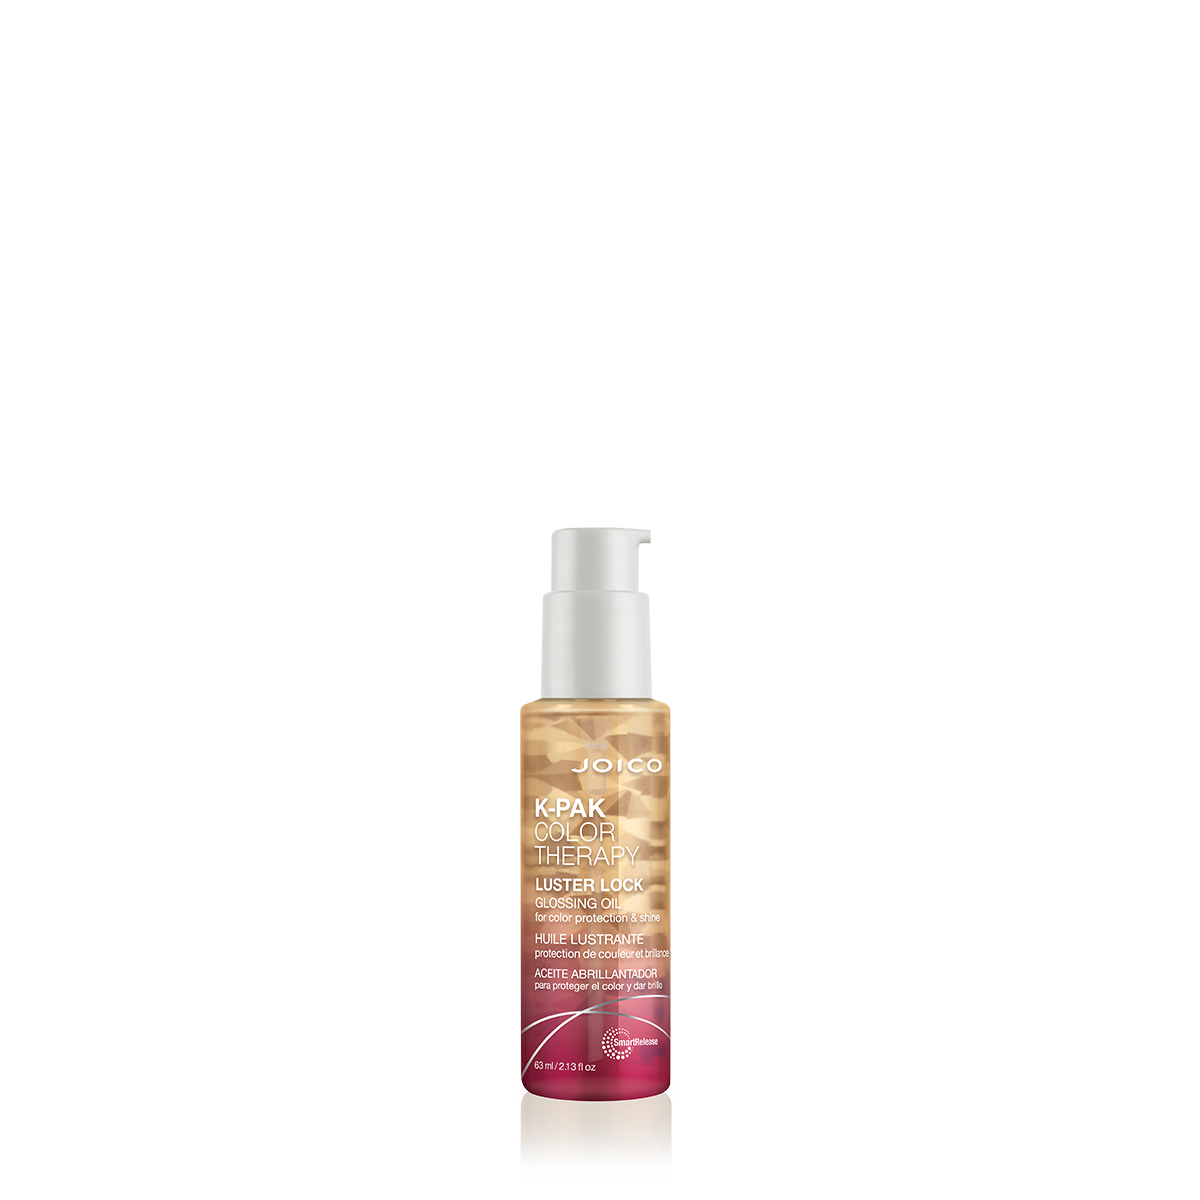 JOICO KPAK Color Therapy luster Lock oil